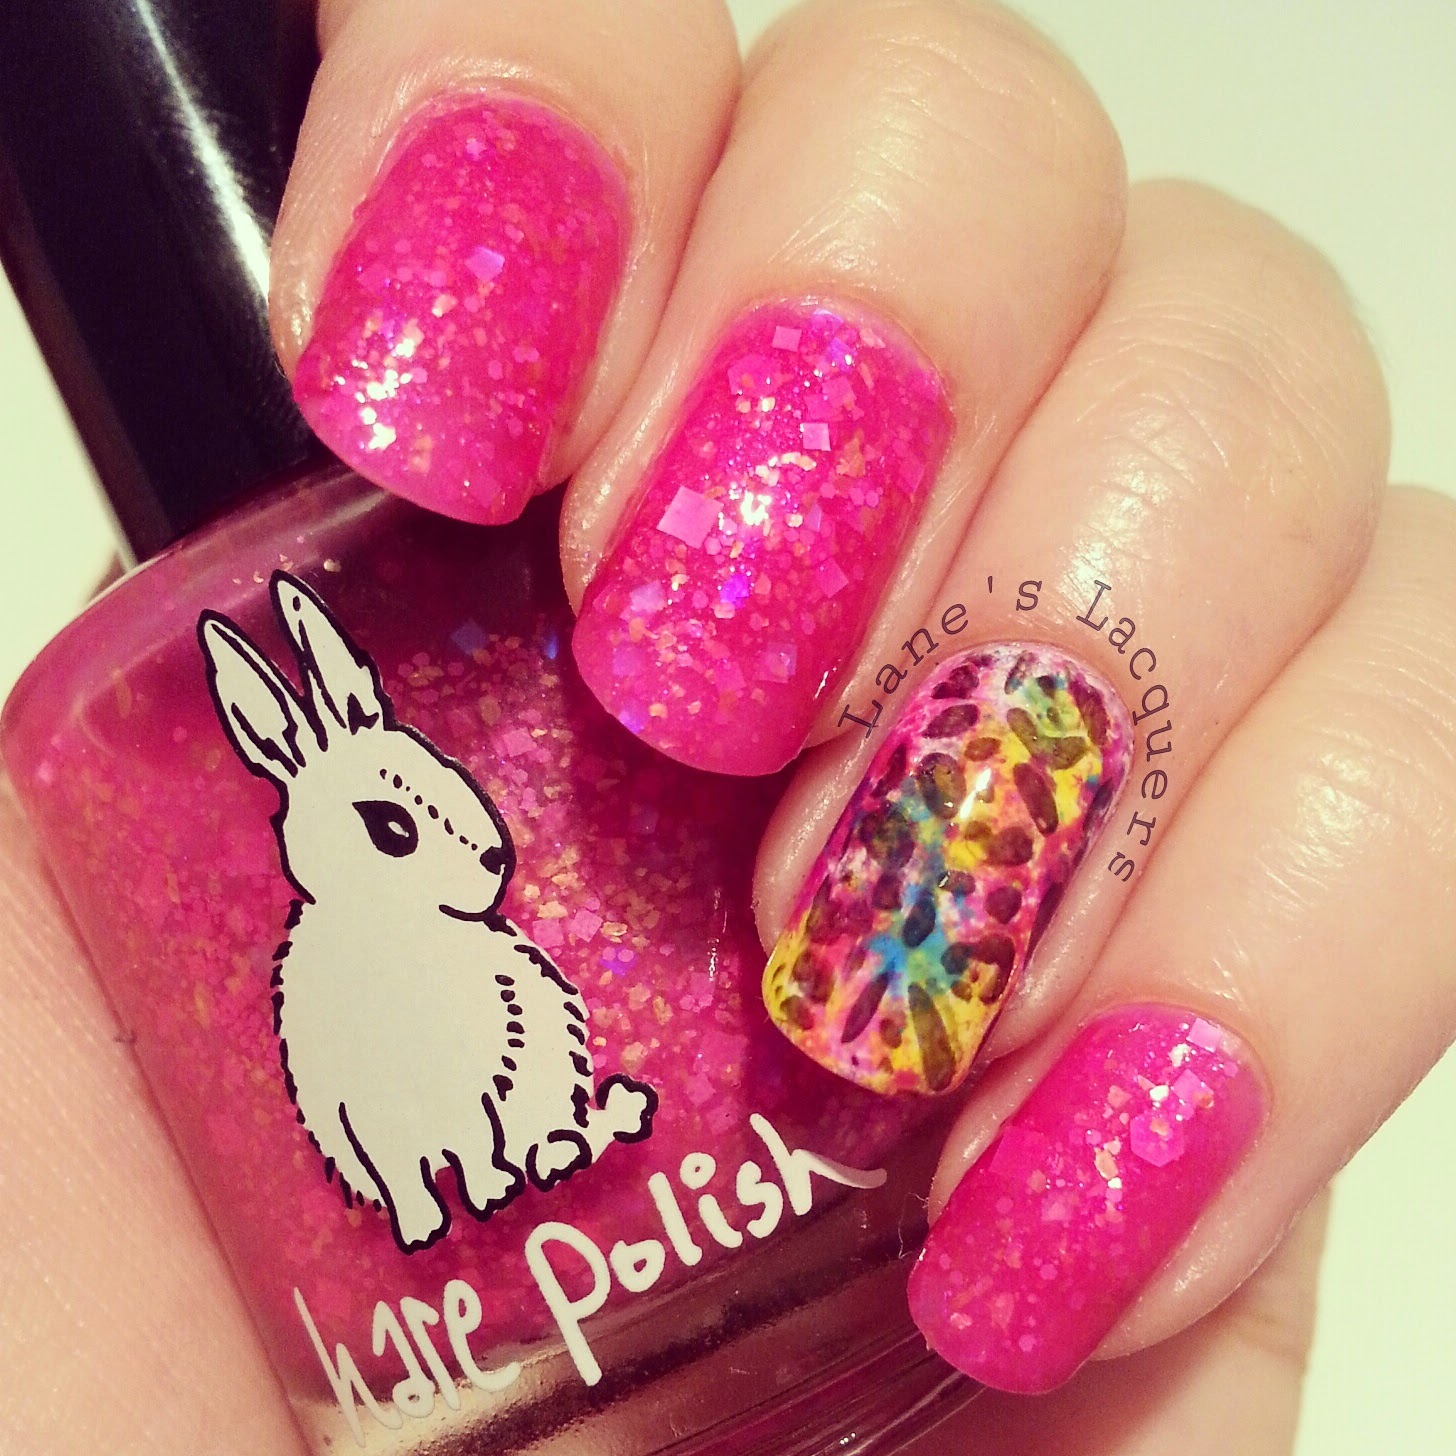 hare-polish-for-the-love-of-lisa-frank-nail-art (2)